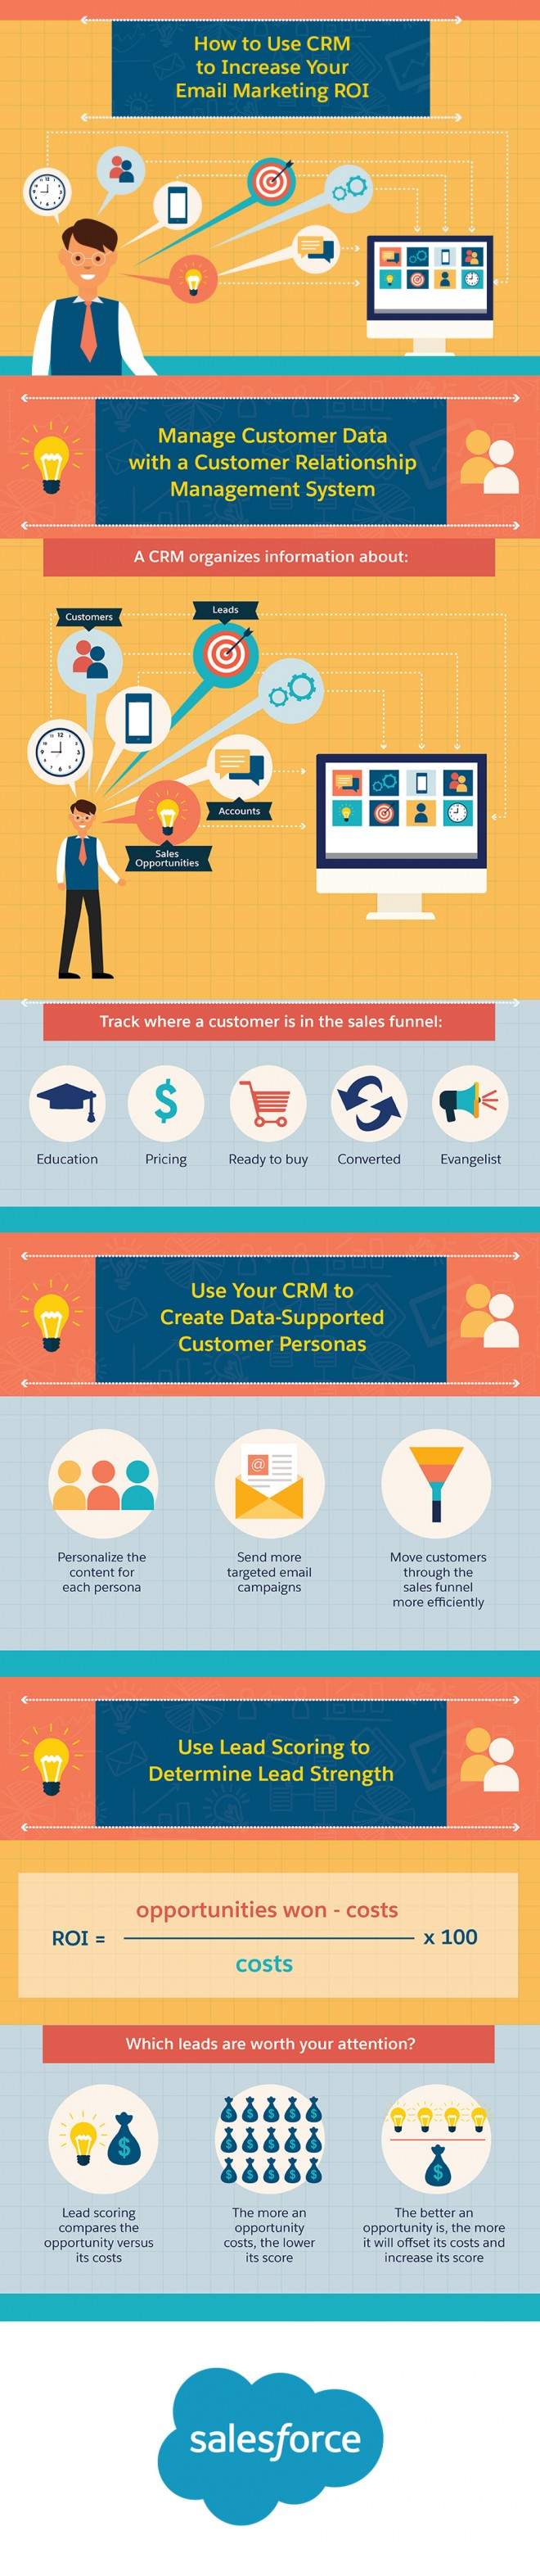 using crm to increase roi